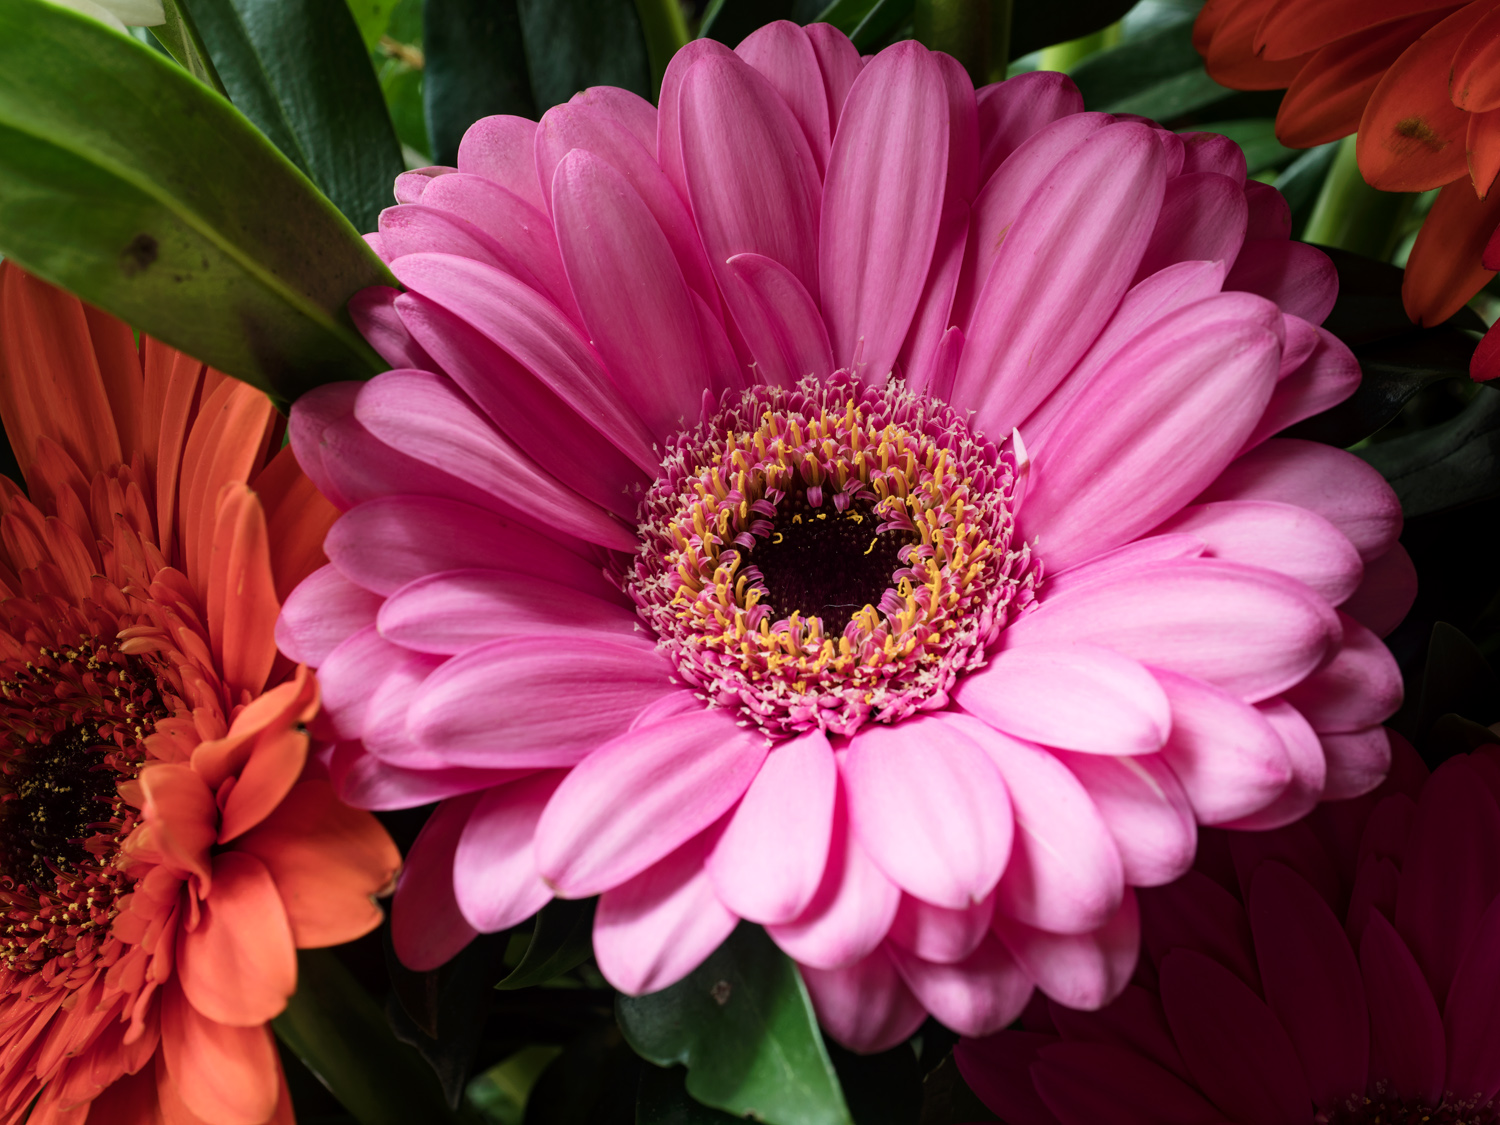 Sensor-Shift Technology - pink gerbera daisy